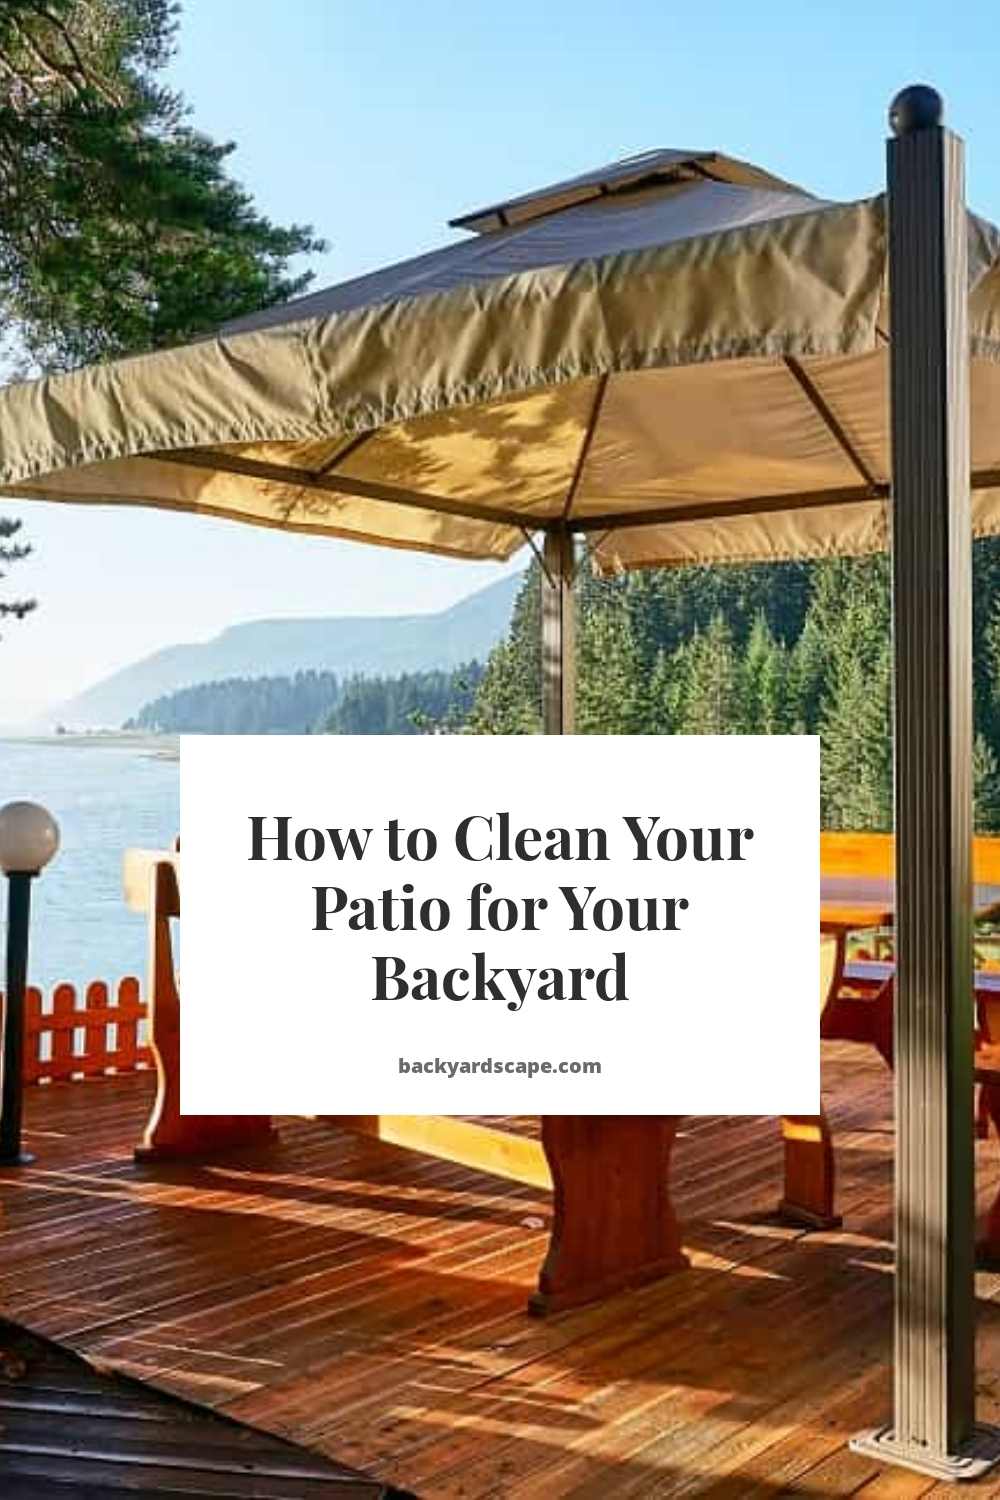 How to Clean Your Patio for Your Backyard